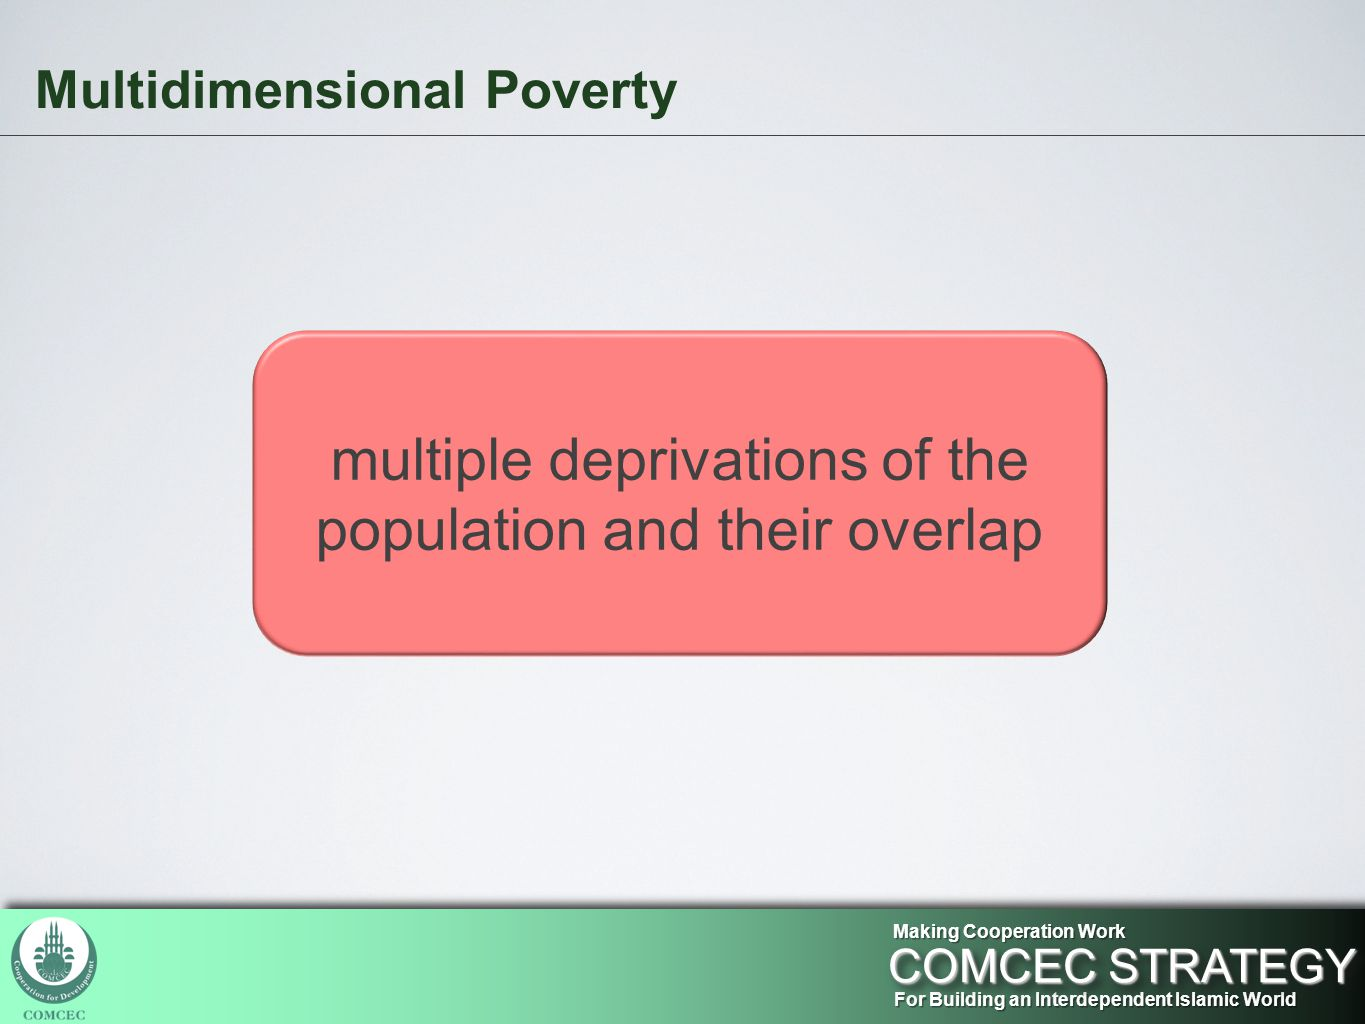 Multidimensional Poverty For Building an Interdependent Islamic World COMCEC STRATEGY Making Cooperation Work multiple deprivations of the population and their overlap